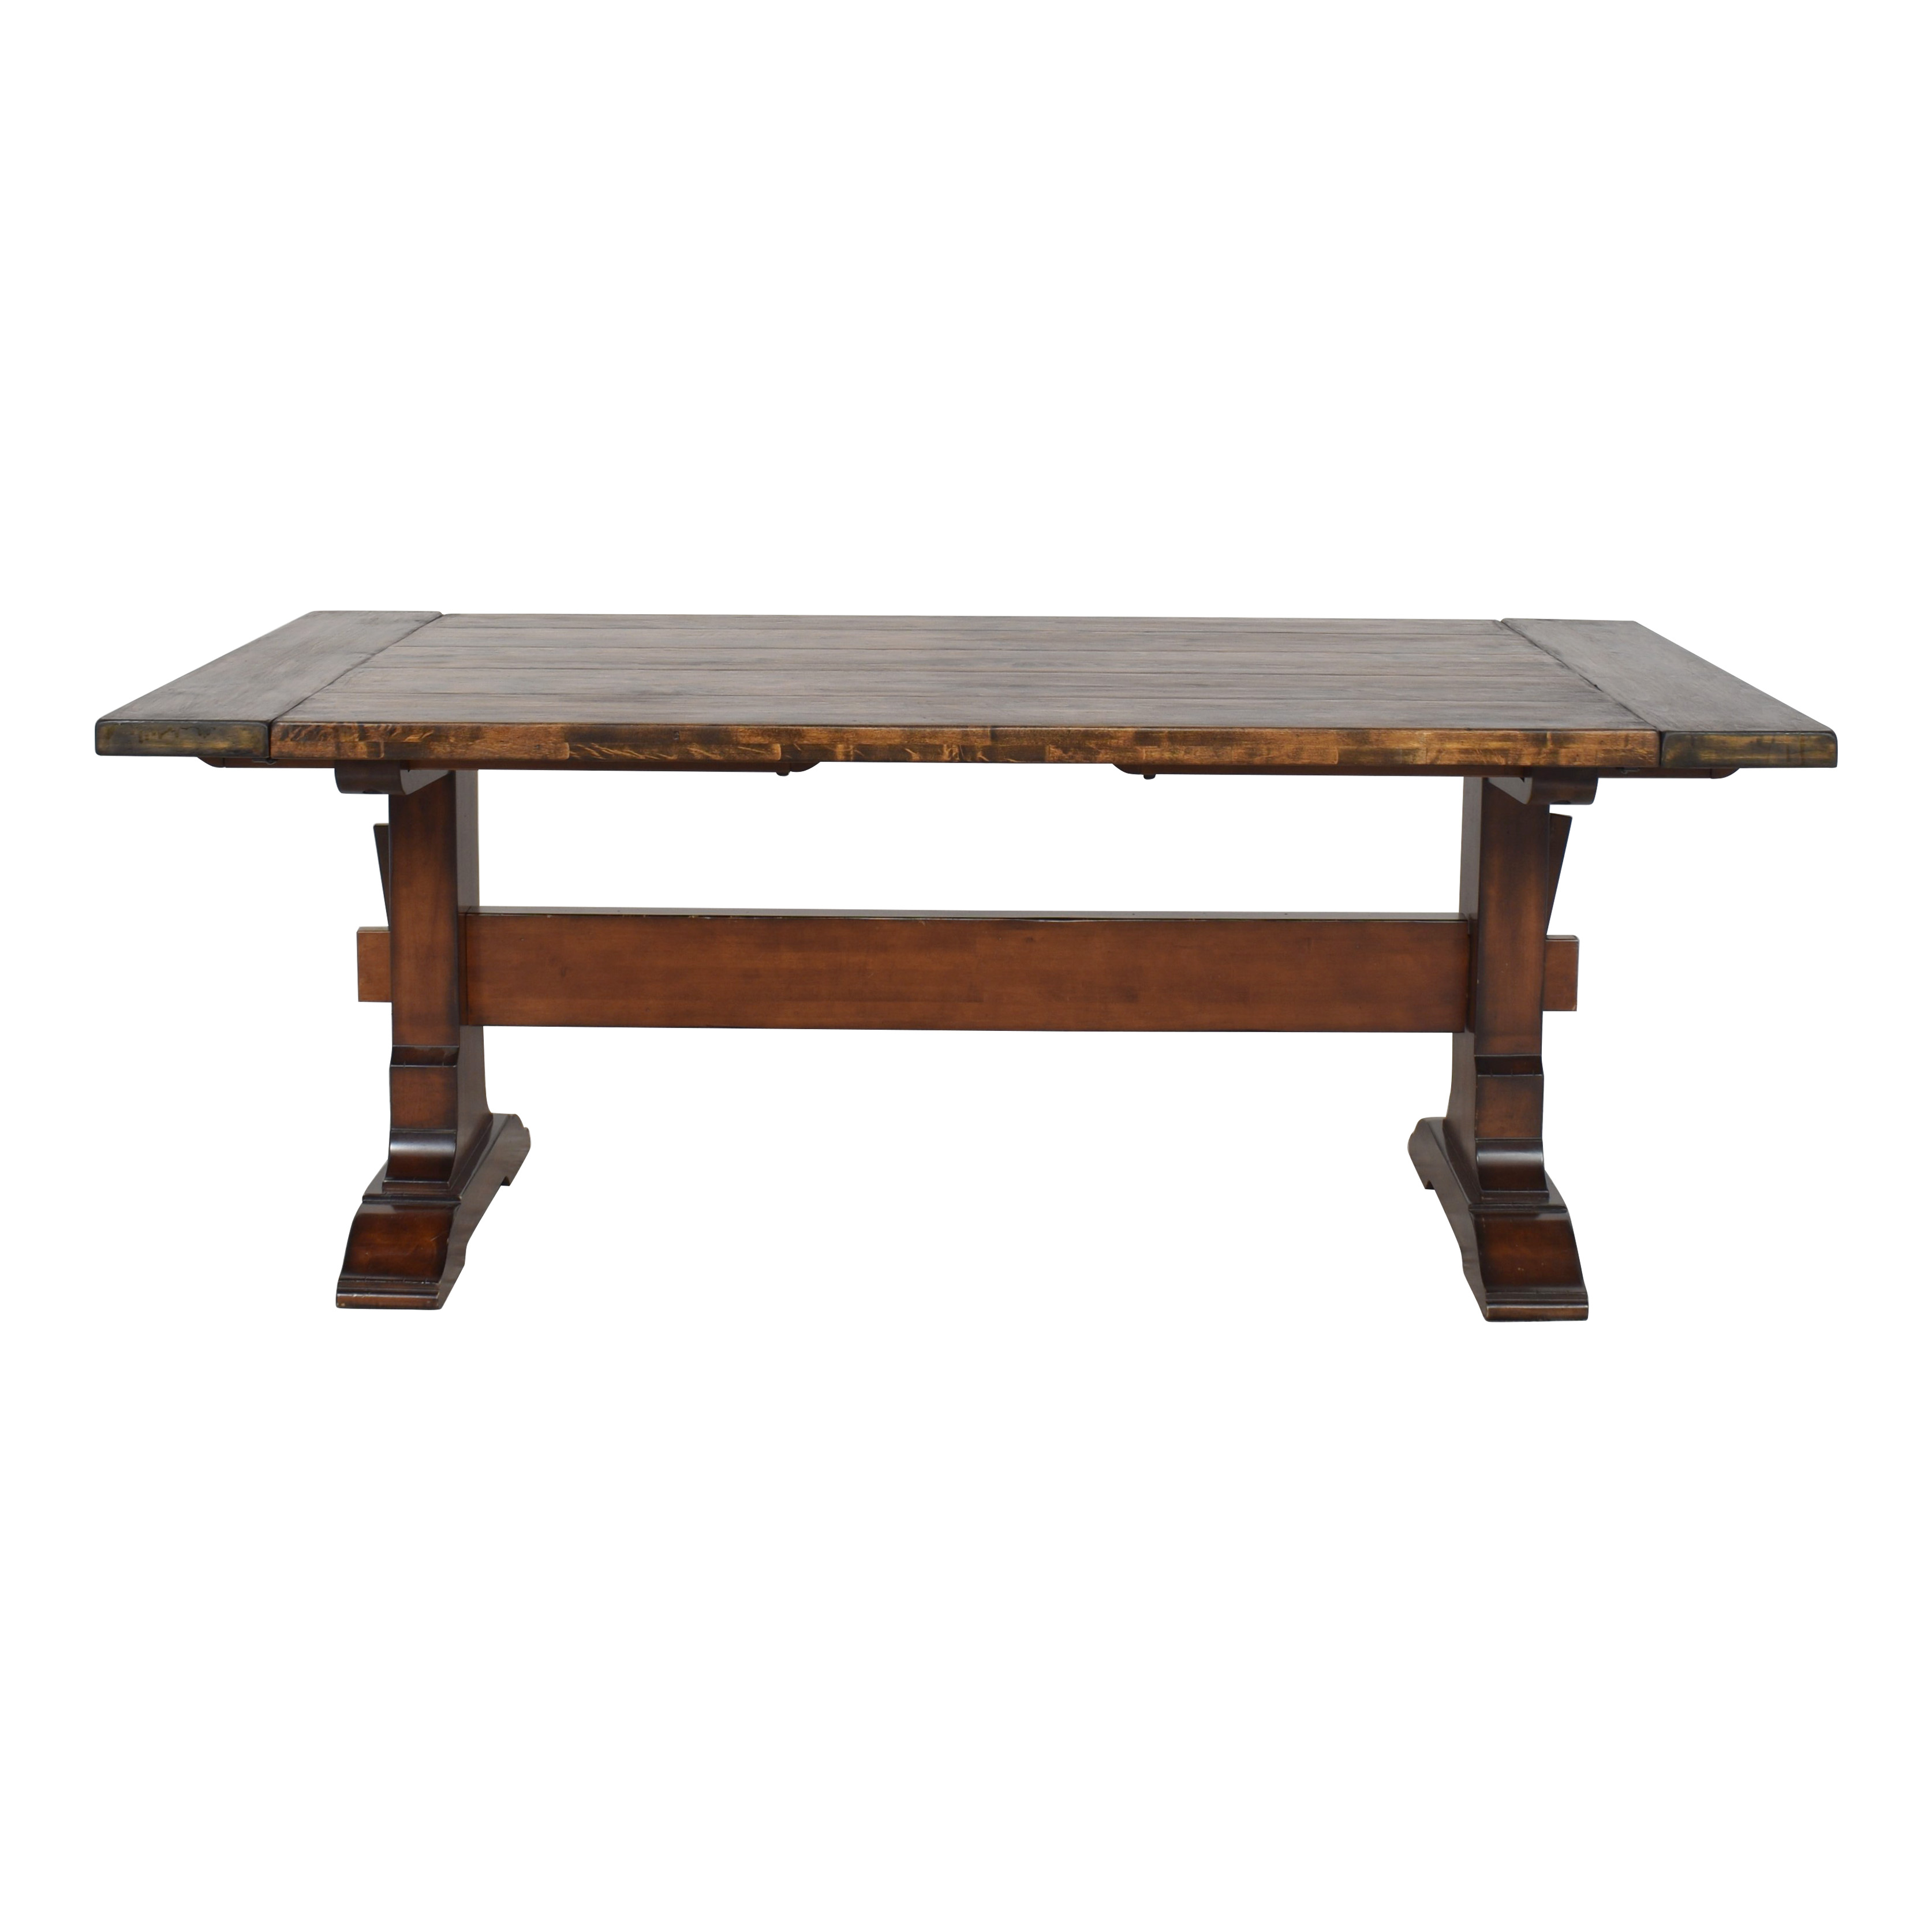 Pottery Barn Trestle Dining Table / Dinner Tables